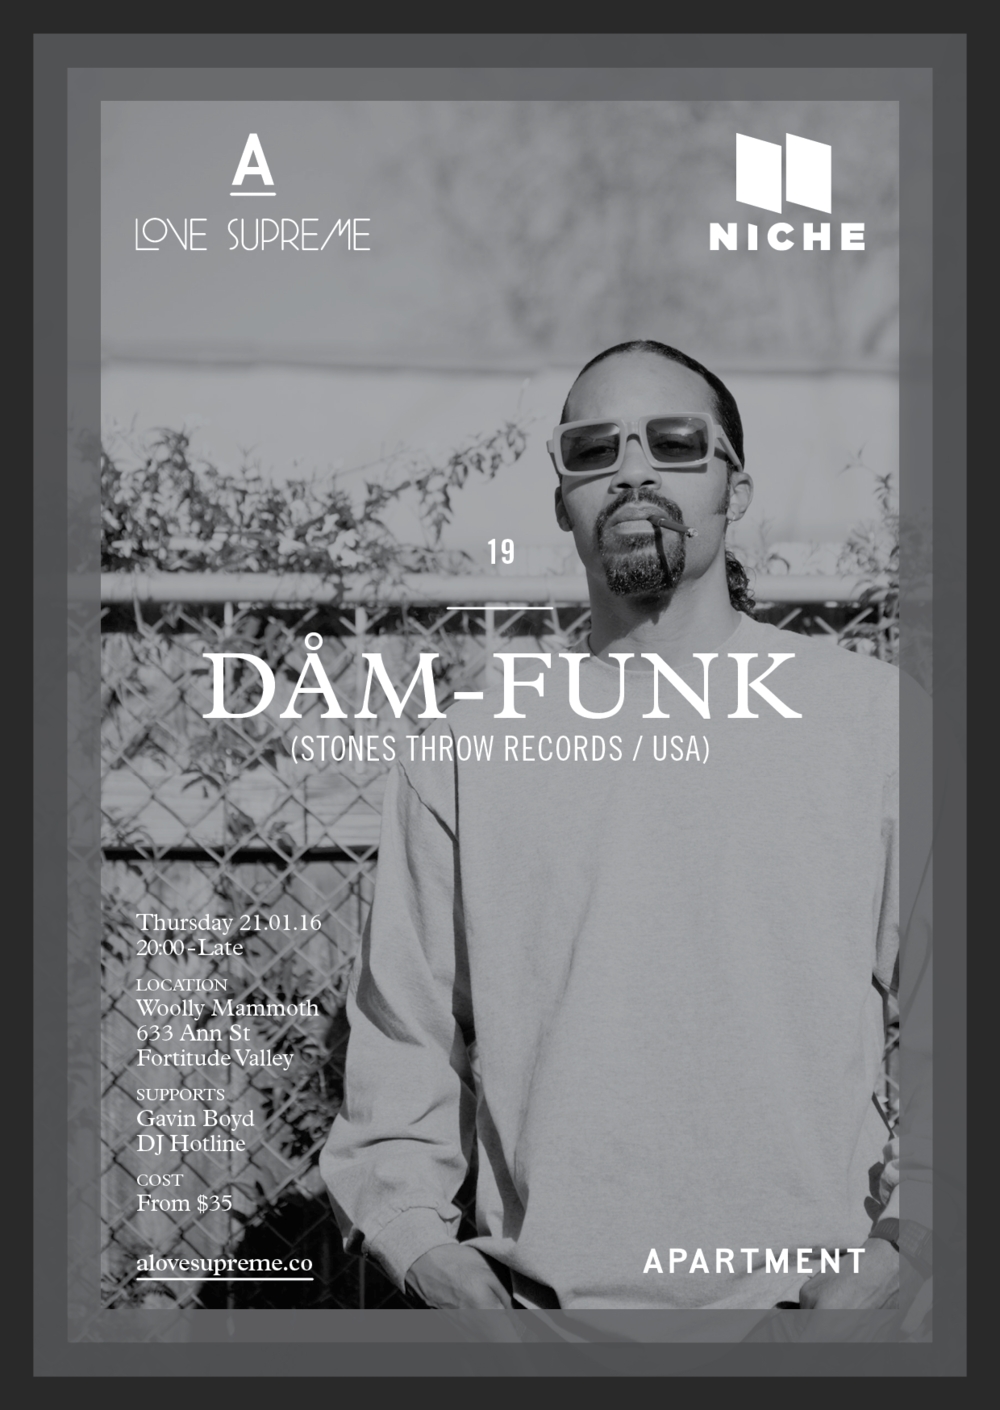 ALS-alovesupreme-19-dam-funk-postcard-press-.png